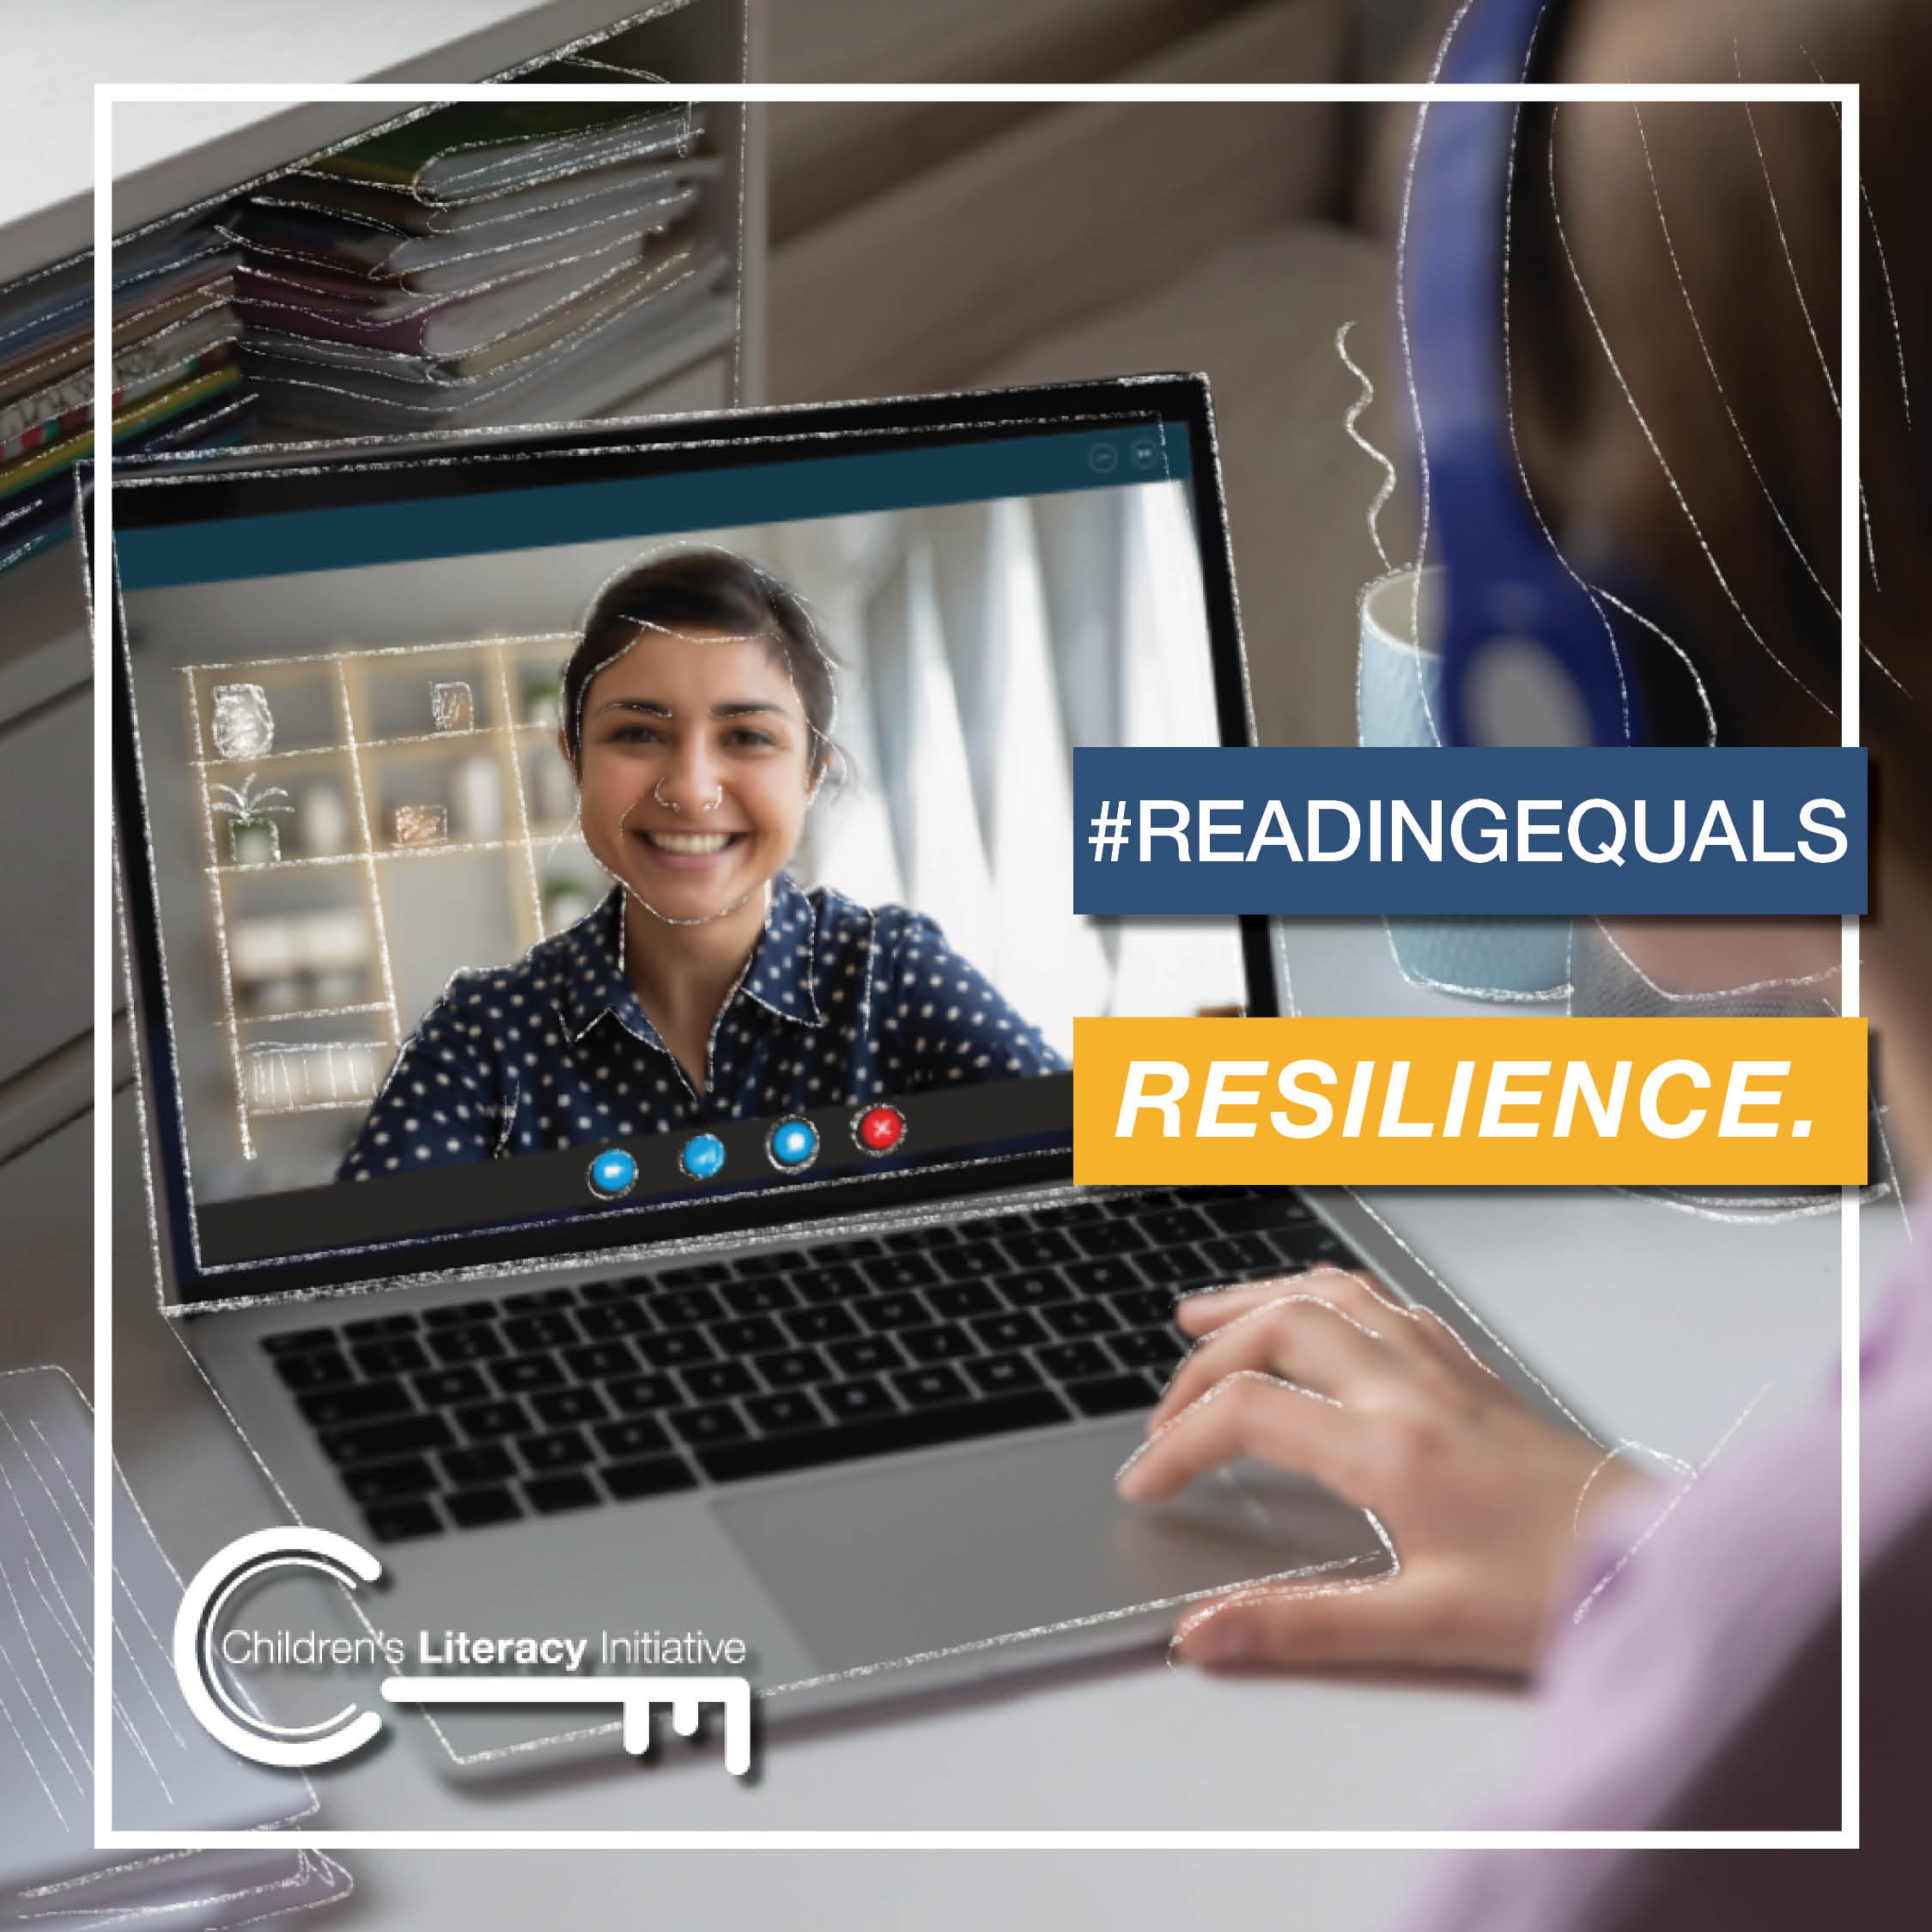 #ReadingEquals #Resilience